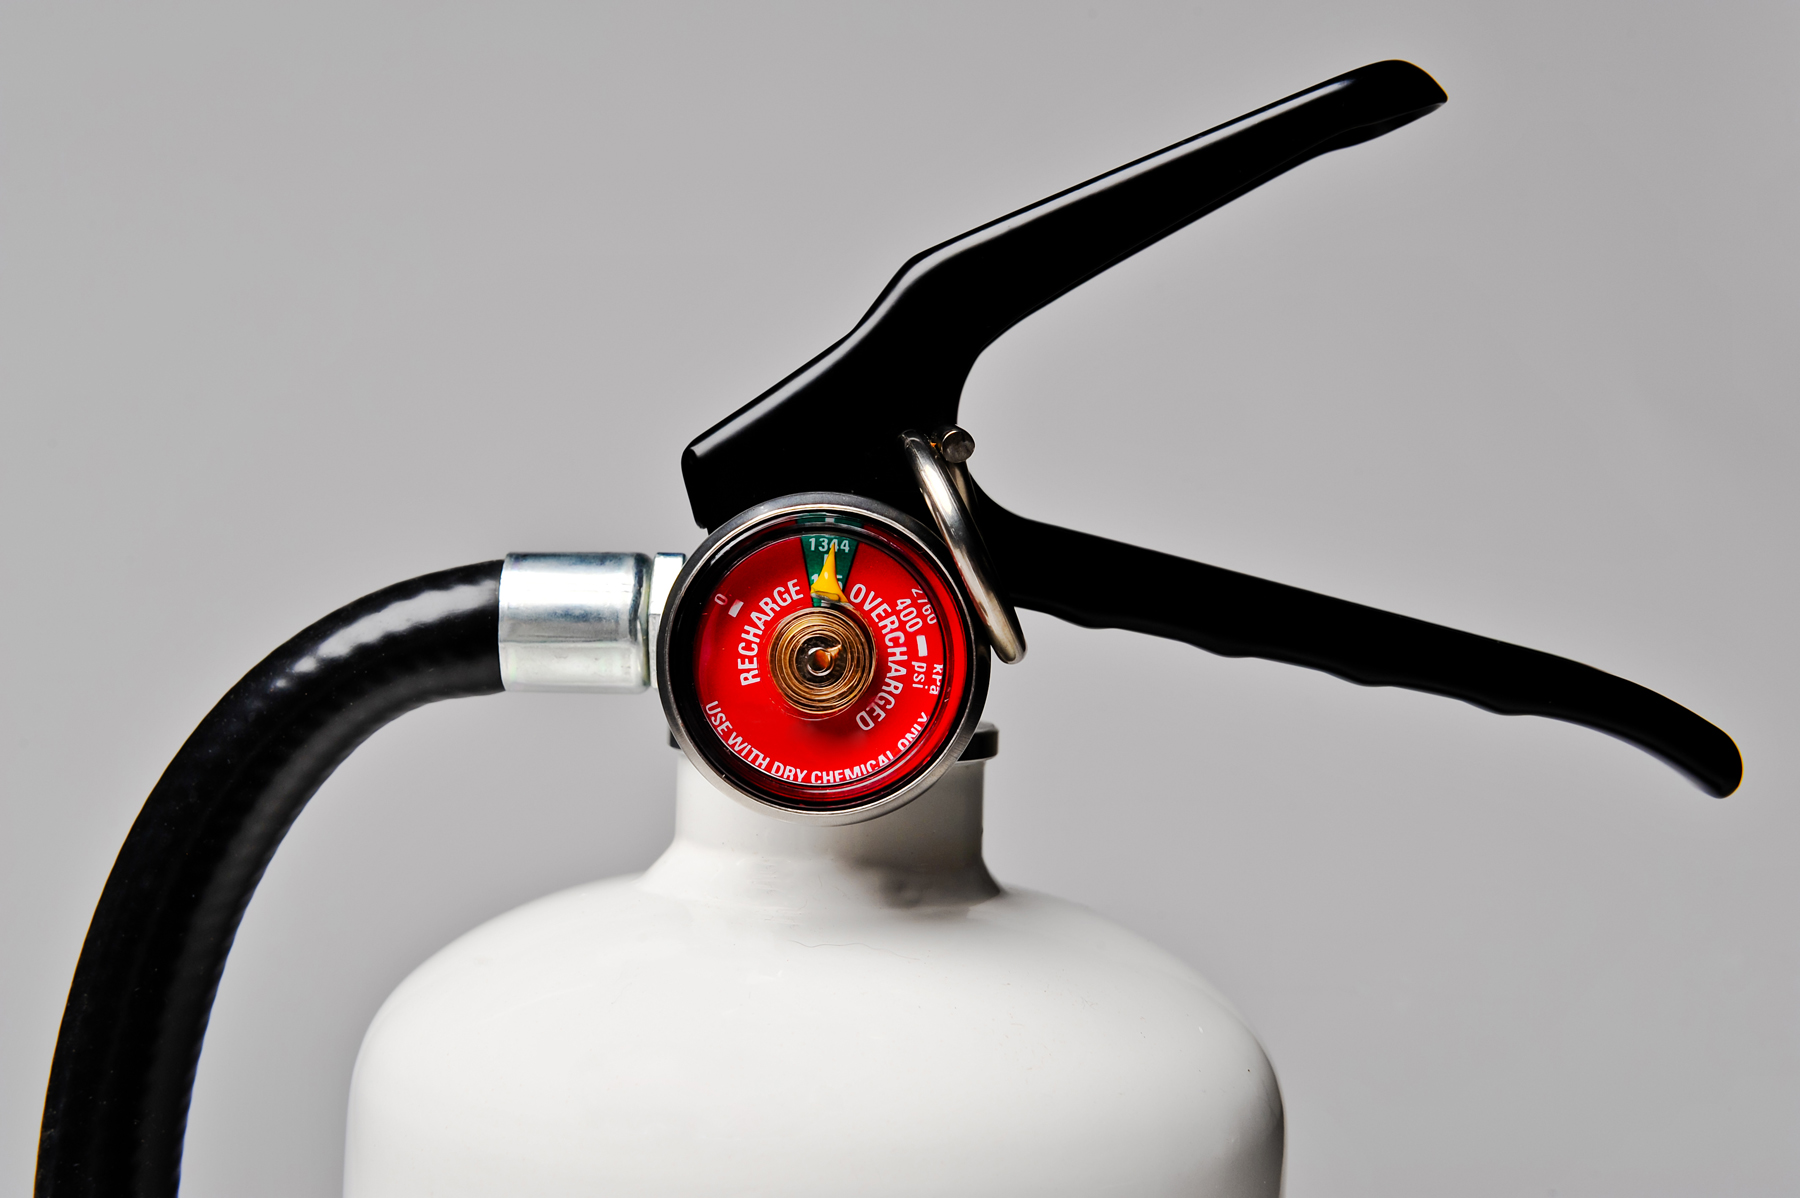 Fire Extinguisher Service, Maintenance, Recharge and Inspections in Chicago, Illinois